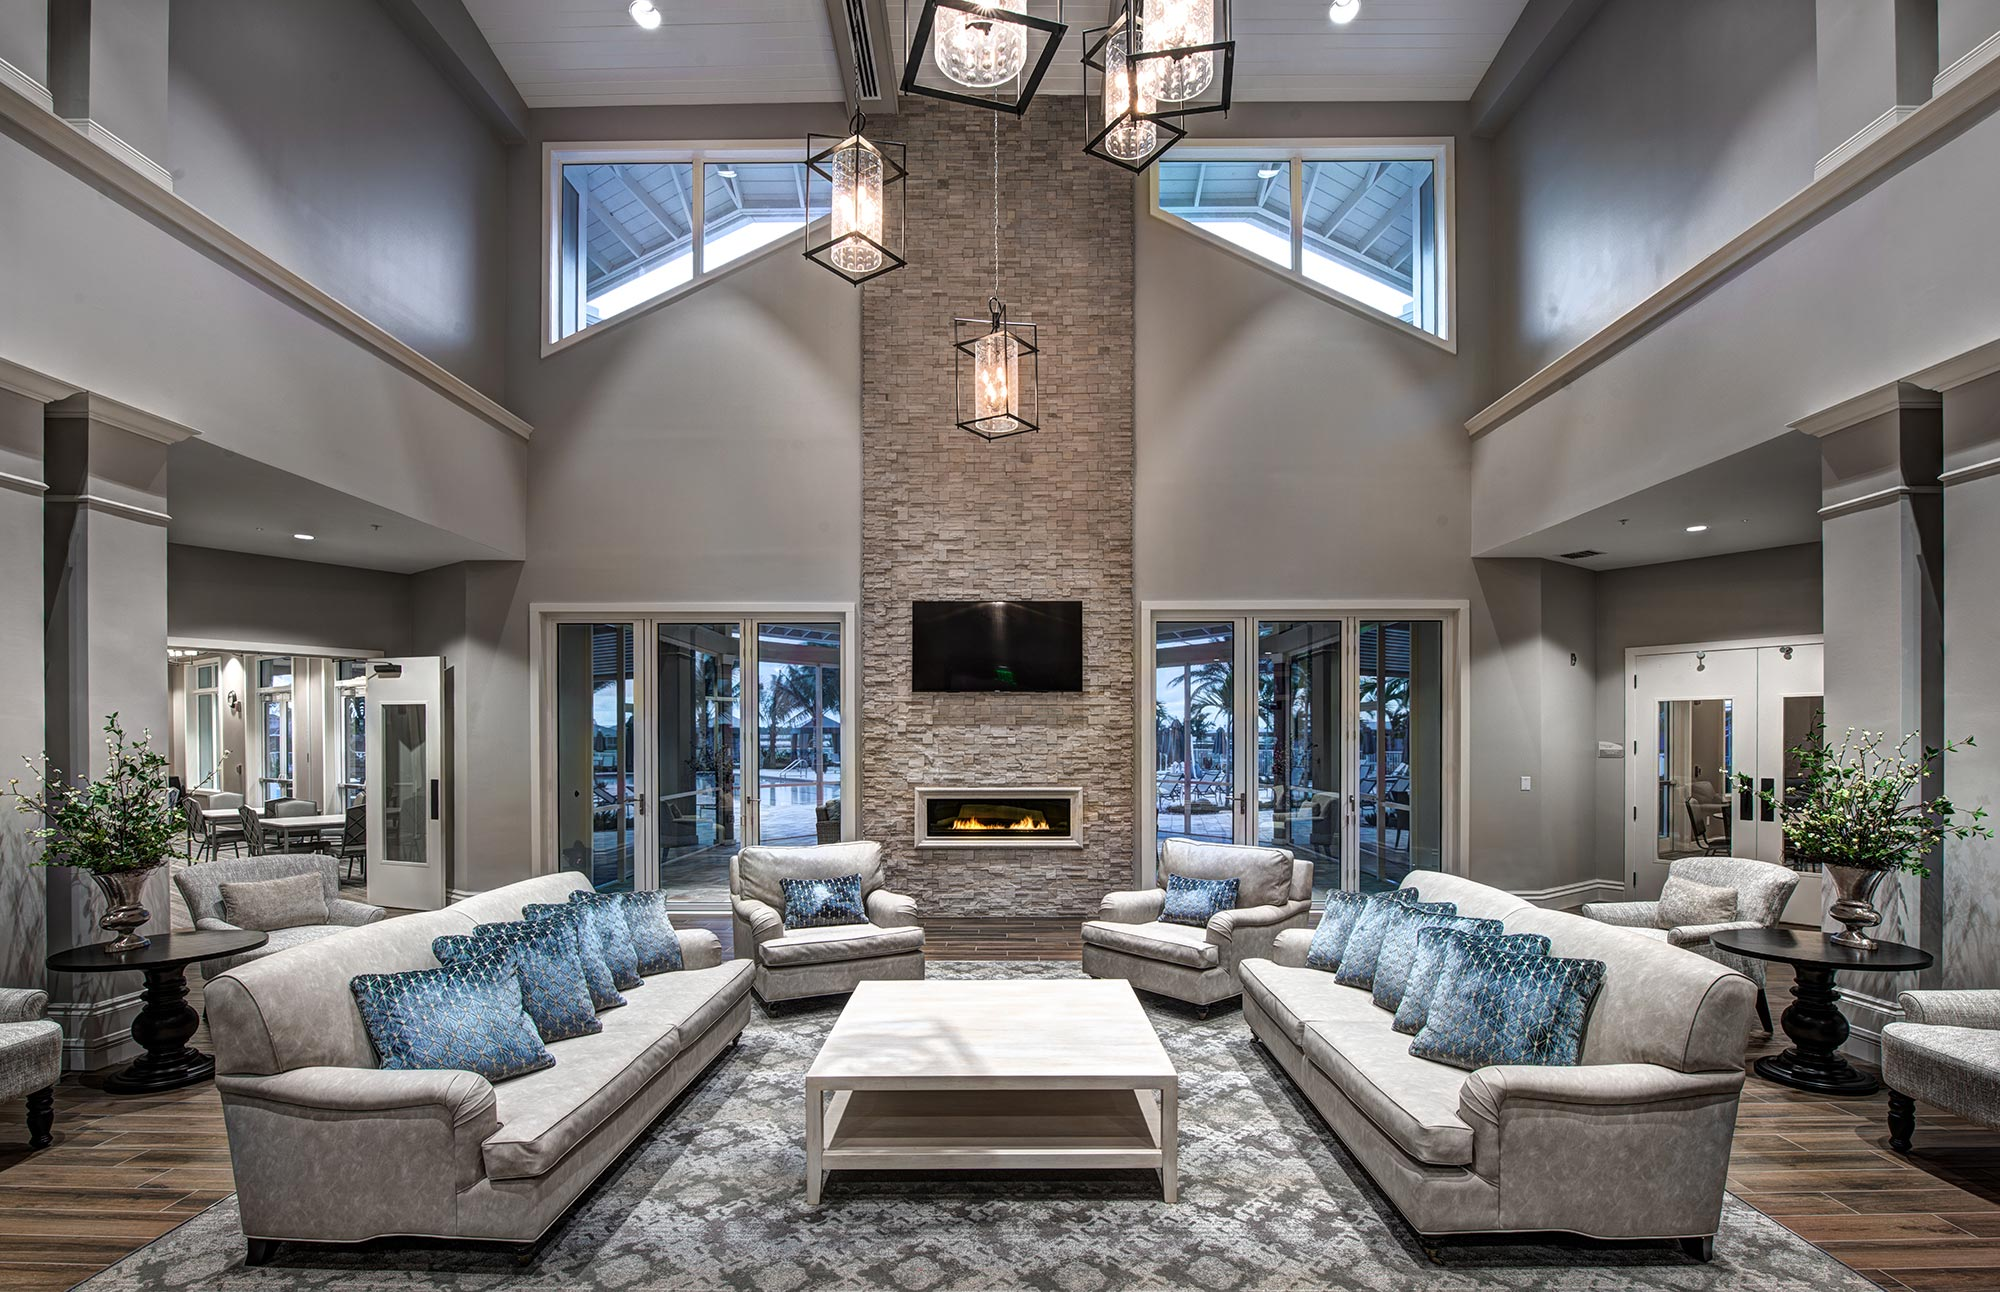 Clubhouse common area with tall ceilings, fireplace, and comfy couches.